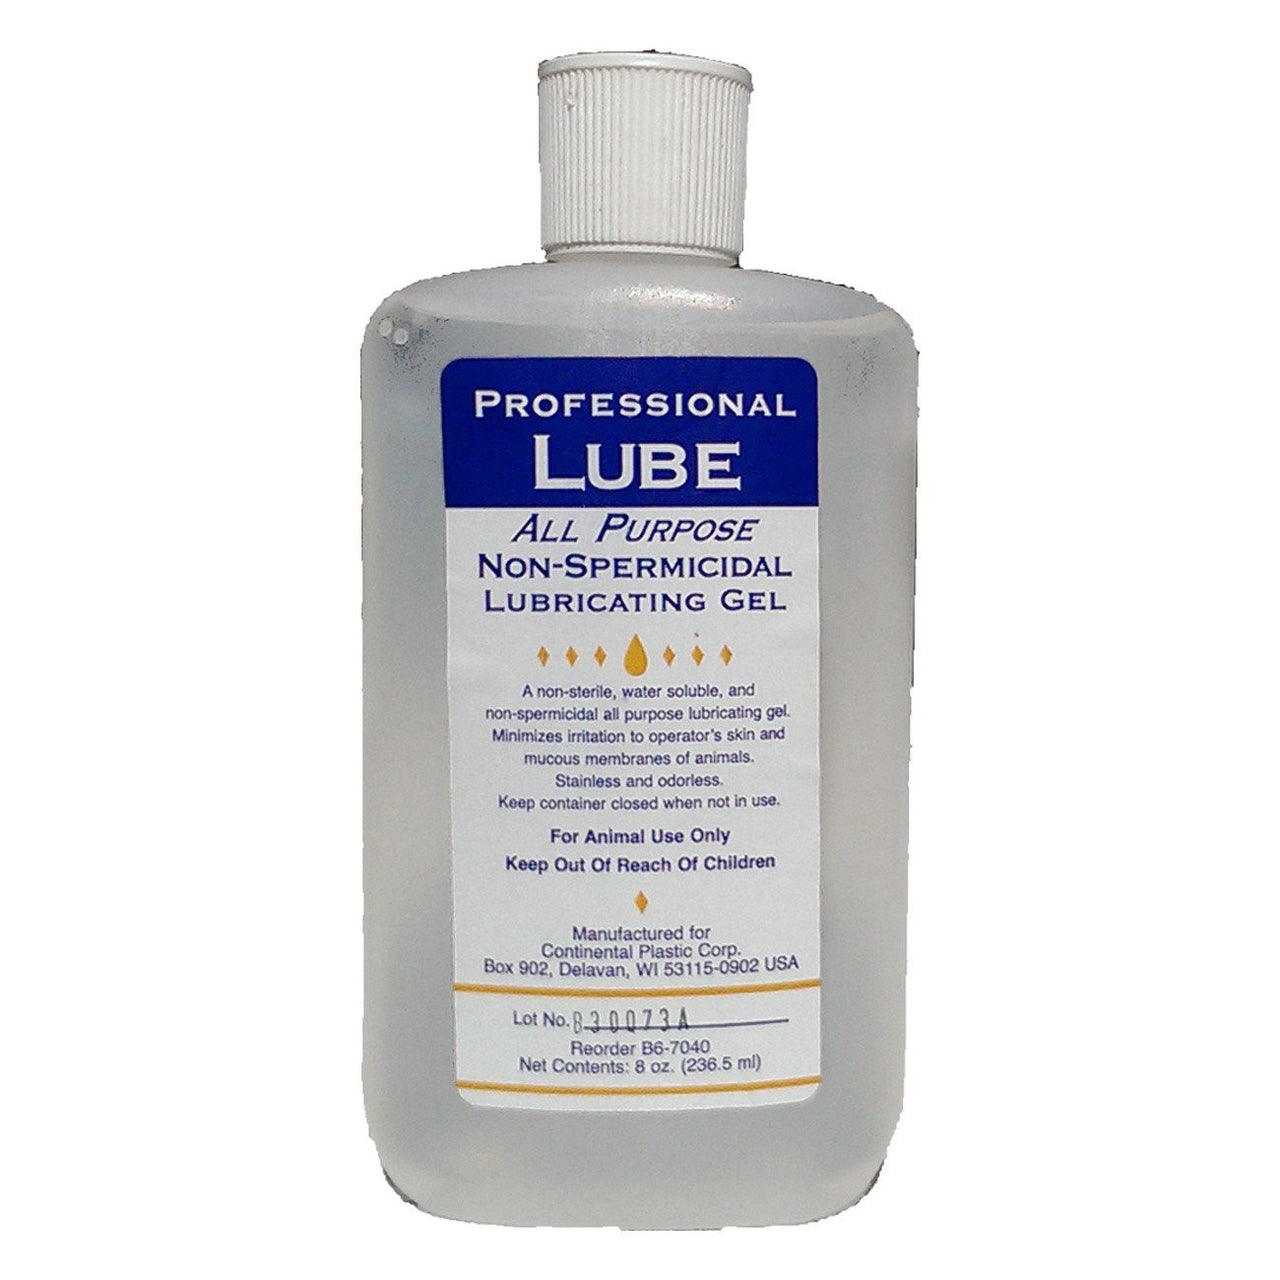 Coburn Professional Ai Lube Gel 236Ml - Veterinary Instrumentation Coburn - Canada